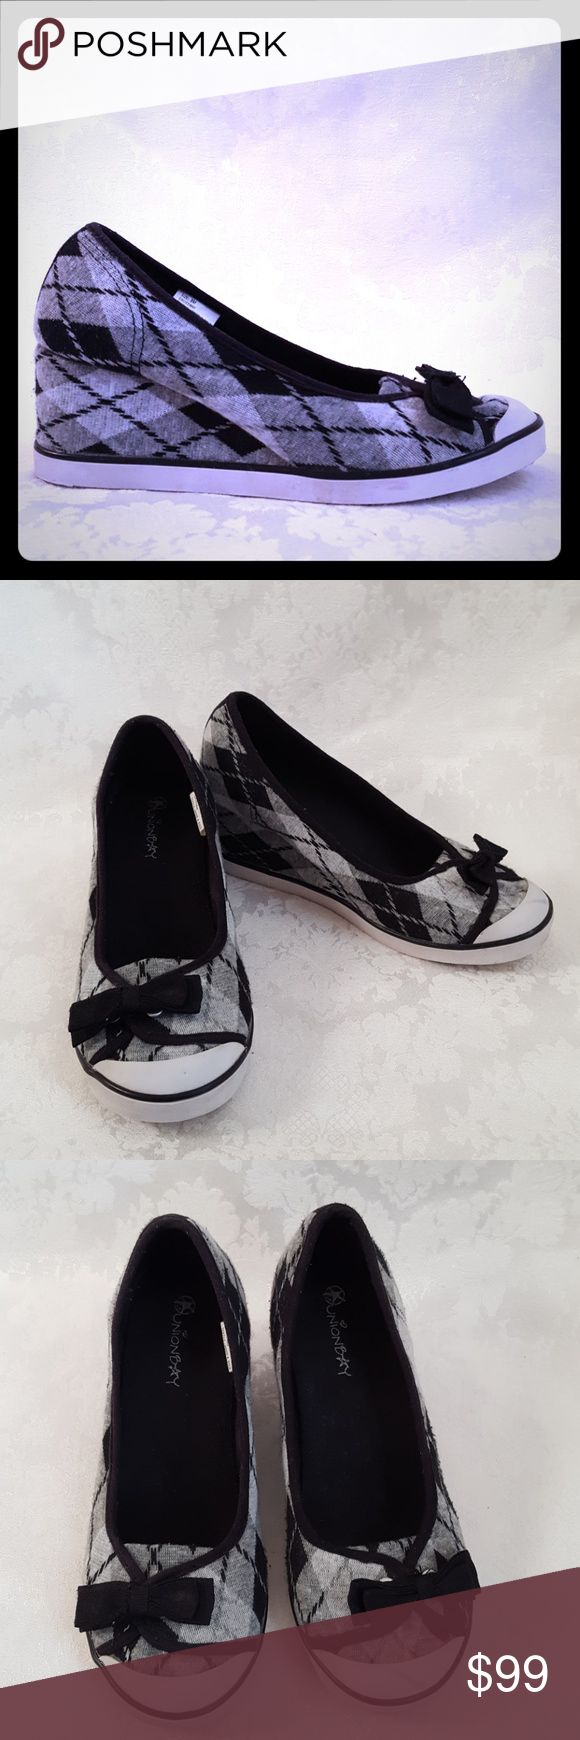 """UnionBay Black & Gray Argyle Wedge Sneaker UnionBay black, gray and white argyle wedge sneaker style loafers with 2 3/4"""" wedge heel.  Style is """"CROSSWAY"""". Decorative black bow.  Very good used condition. Small scuff on toe. Smoke free and pet free home.   Check out my other listings - 100's of 👠shoes👠, 👢boots👢 and 👜bags👜. Bundle 2 or more and save money!💲💵💲 UNIONBAY Shoes Sneakers"""